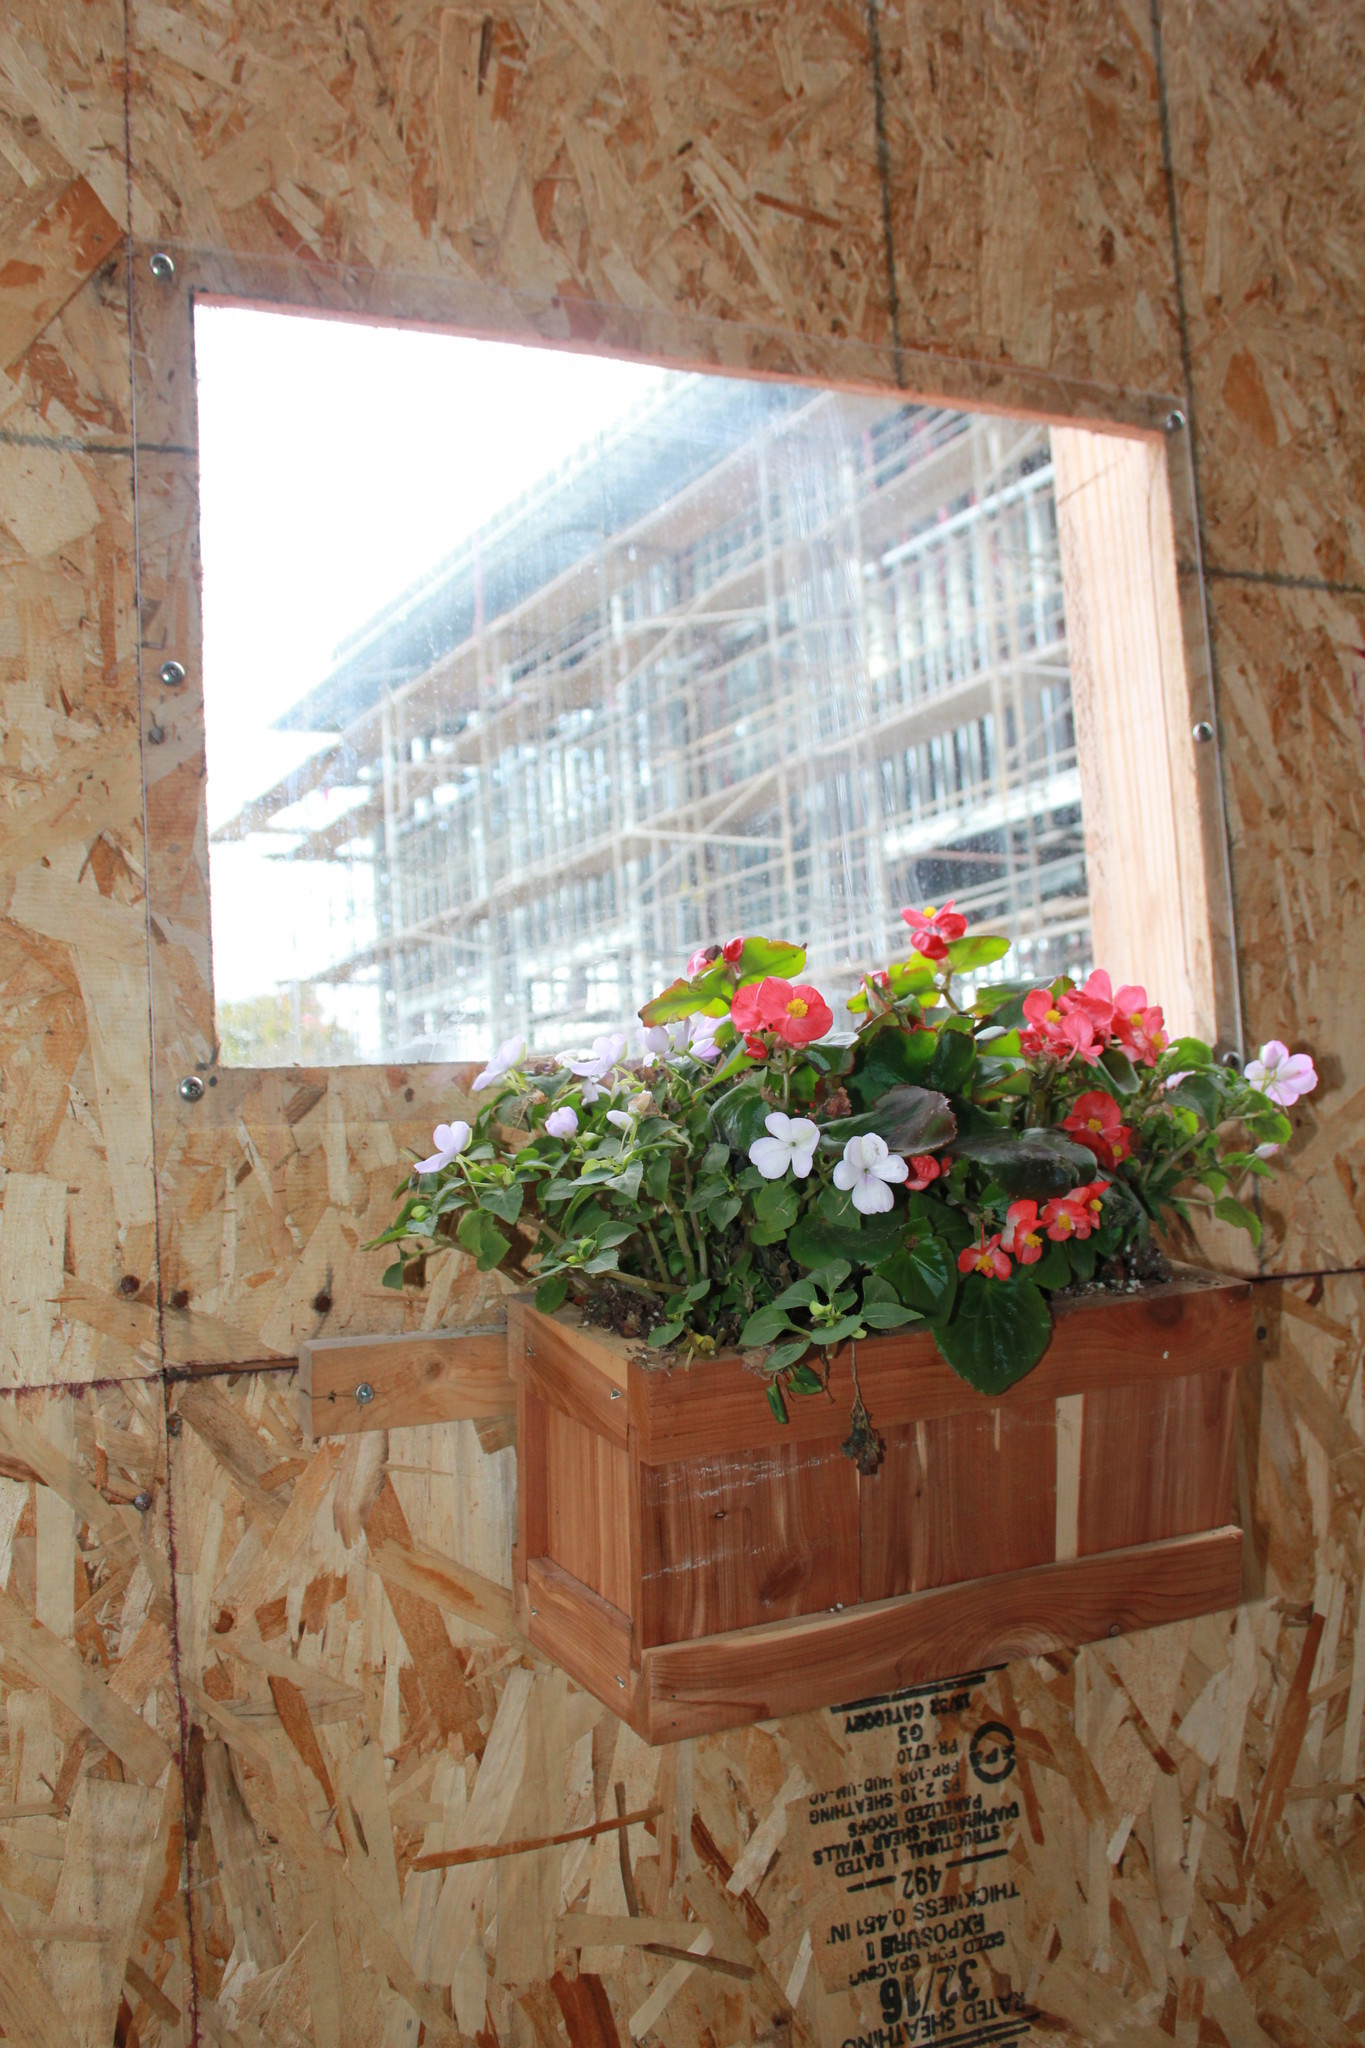 San Dieguito students added a flower box to a window in the construction wall.